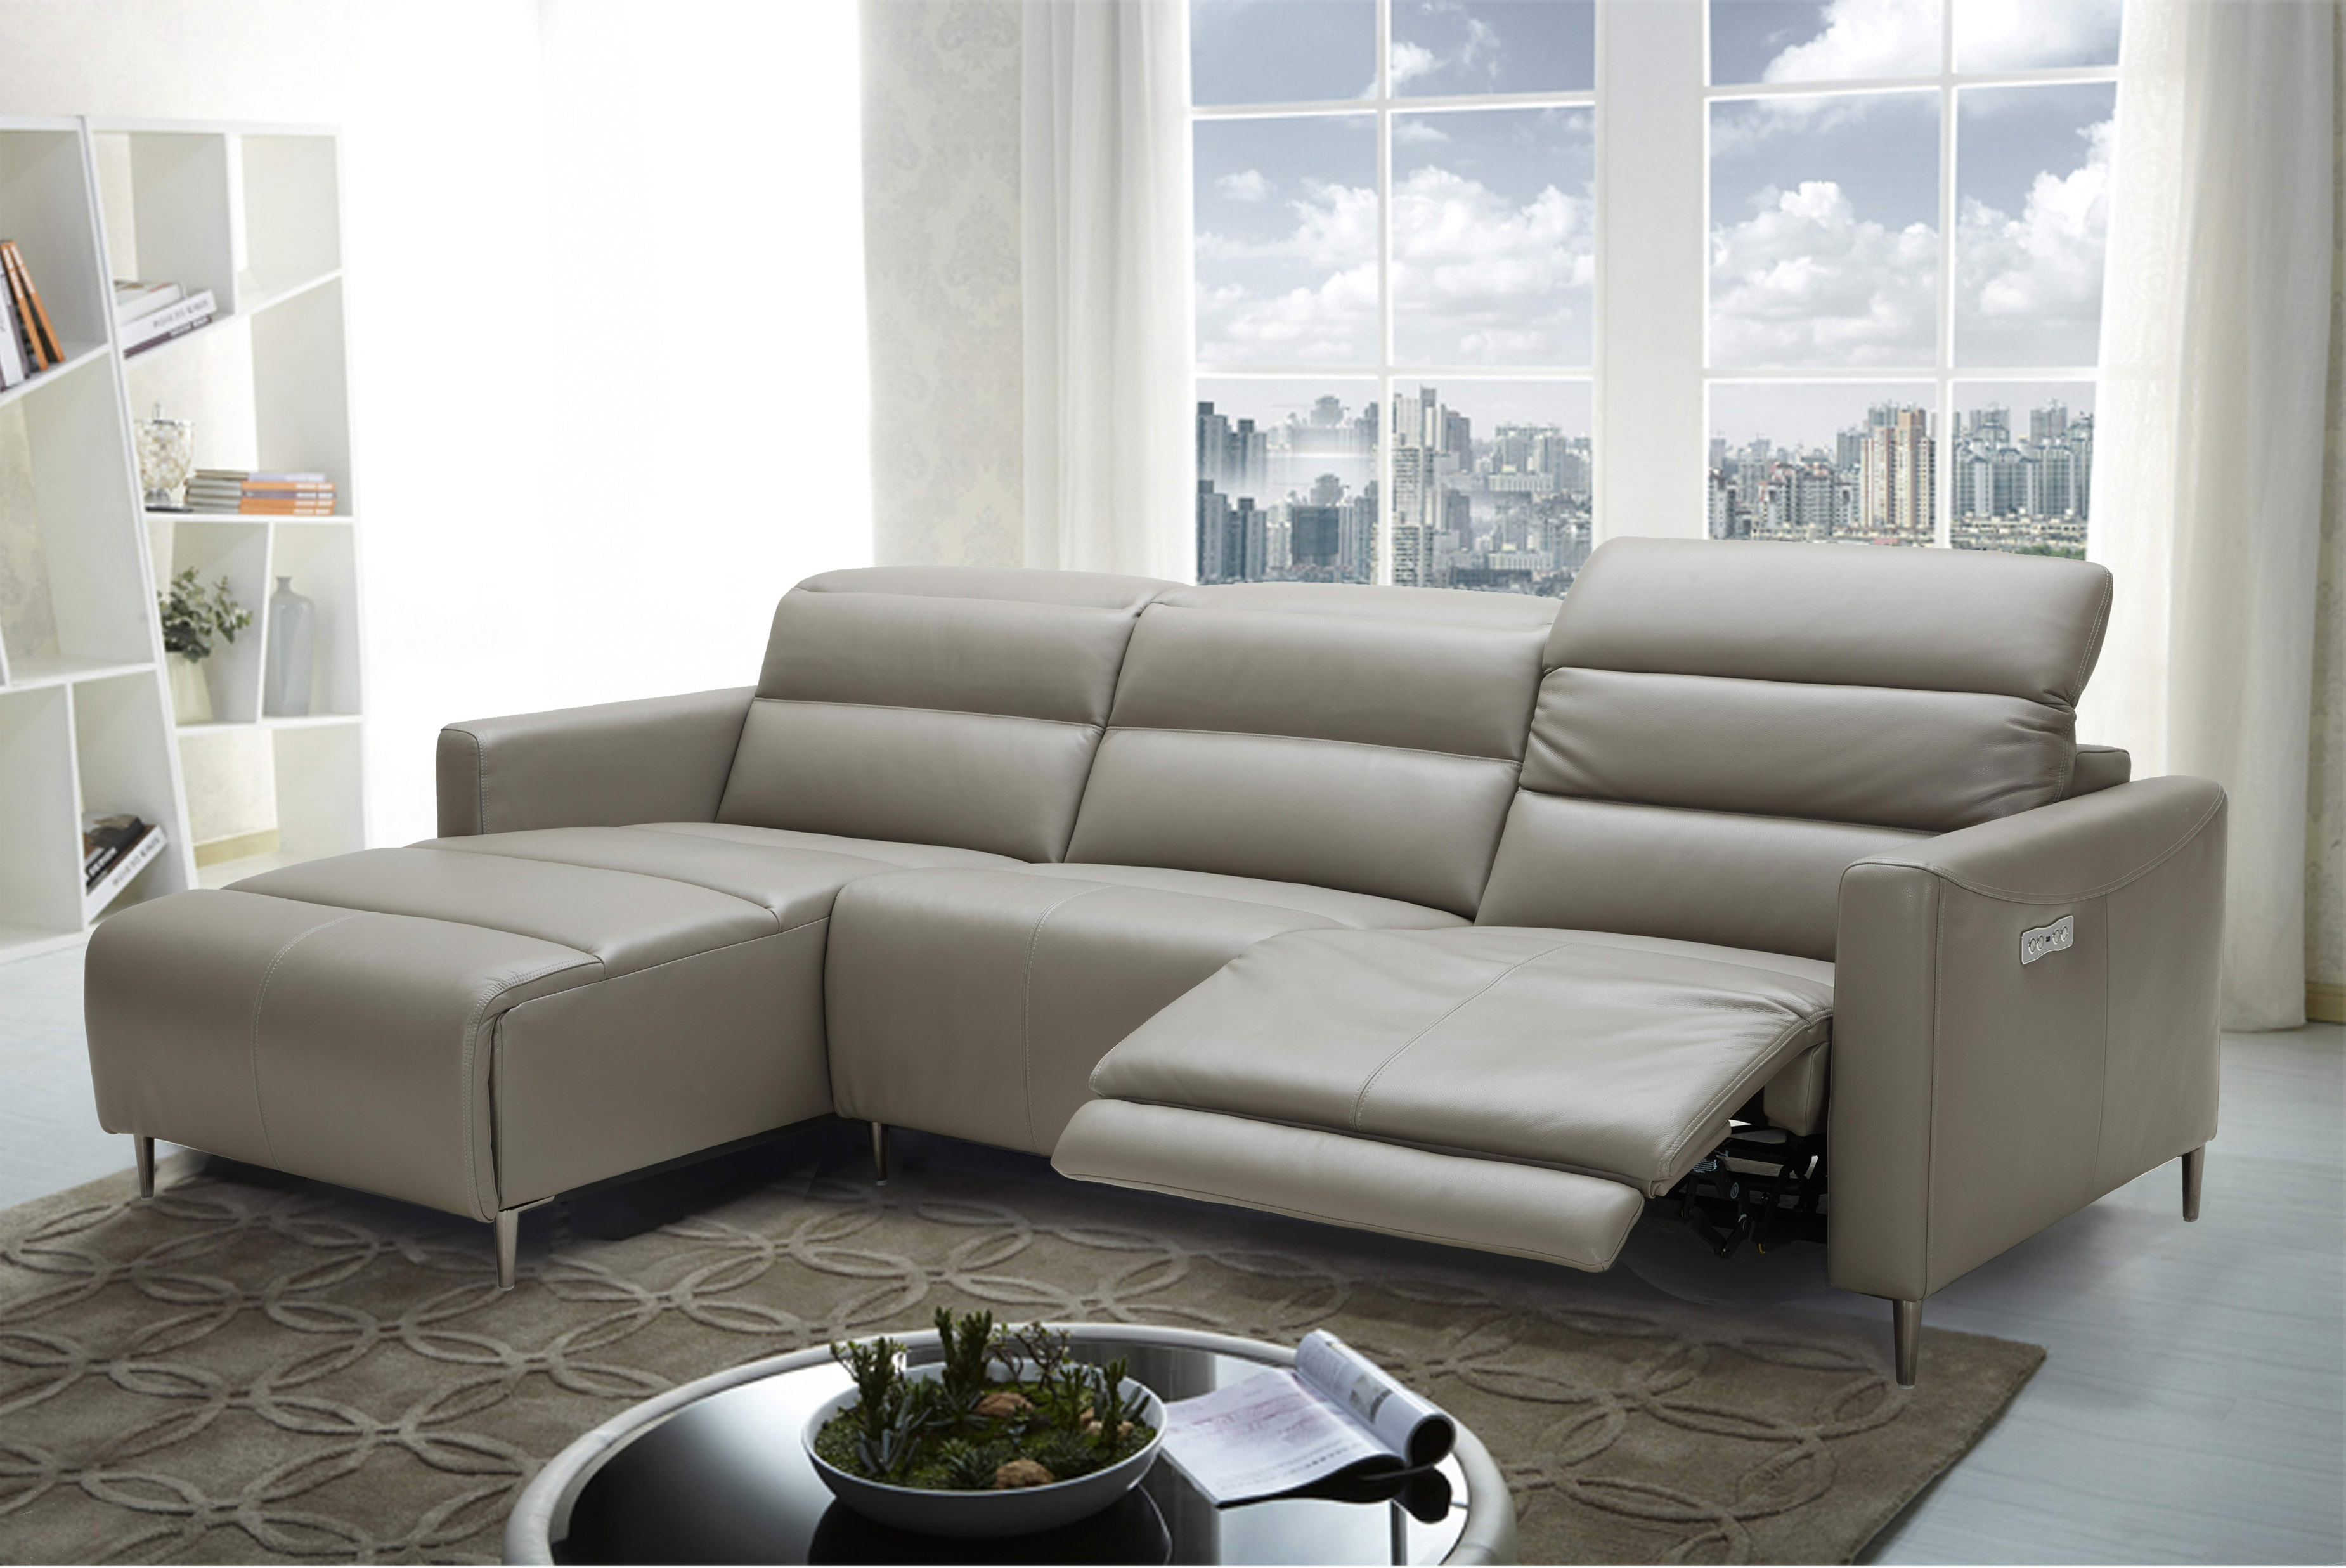 Exclusive Italian Leather Living Room Furniture Baltimore